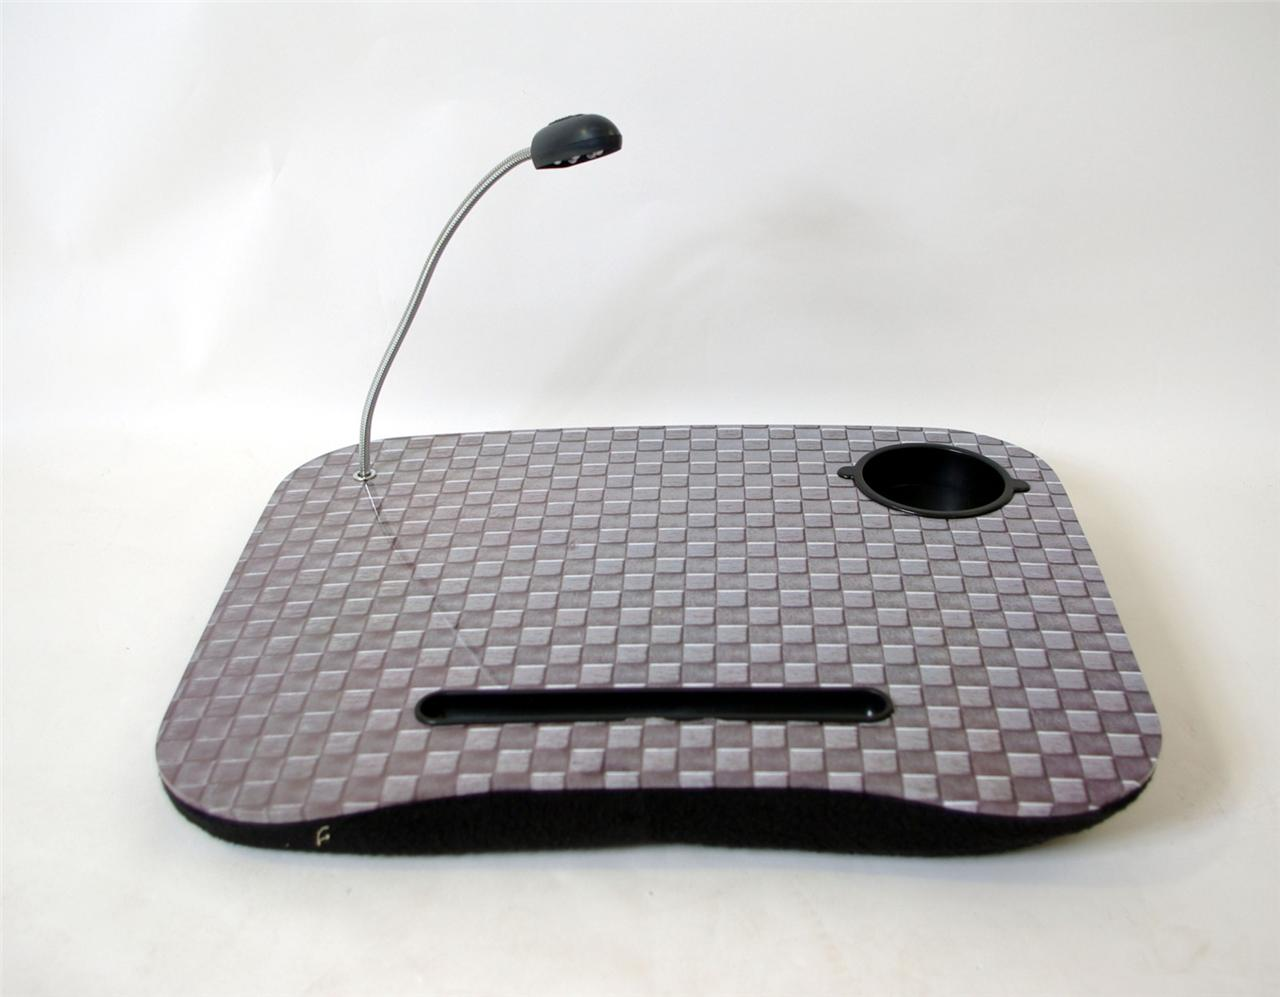 LAPTOP CUSHION PORTABLE READING LAP TOP TRAY TABLE WITH 5